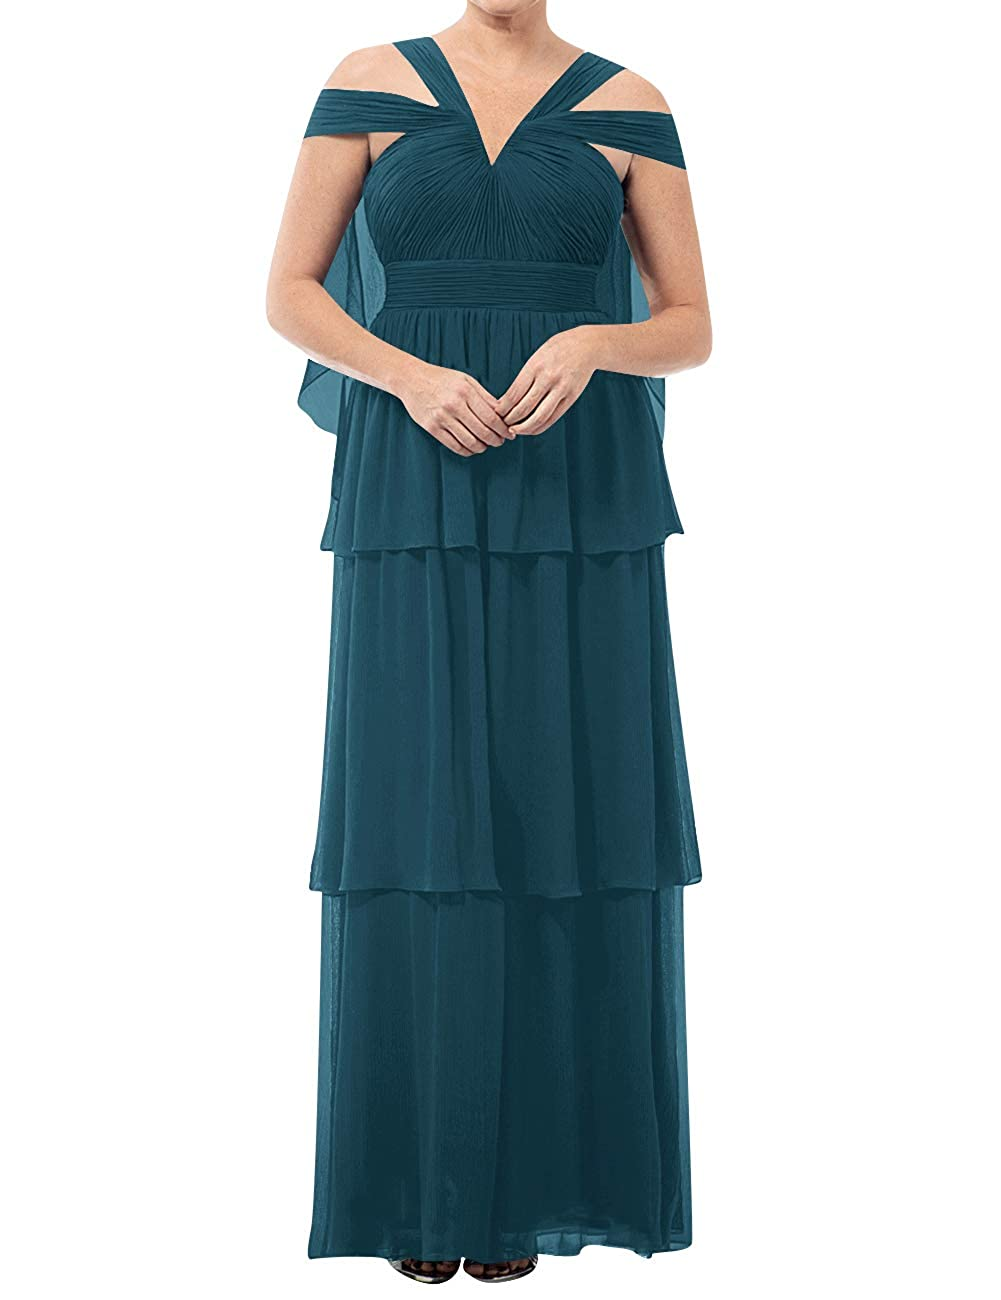 Teal Mother of The Bride Dresses VNeck Long Mother of Groom Dress Plus Size Evening Gowns